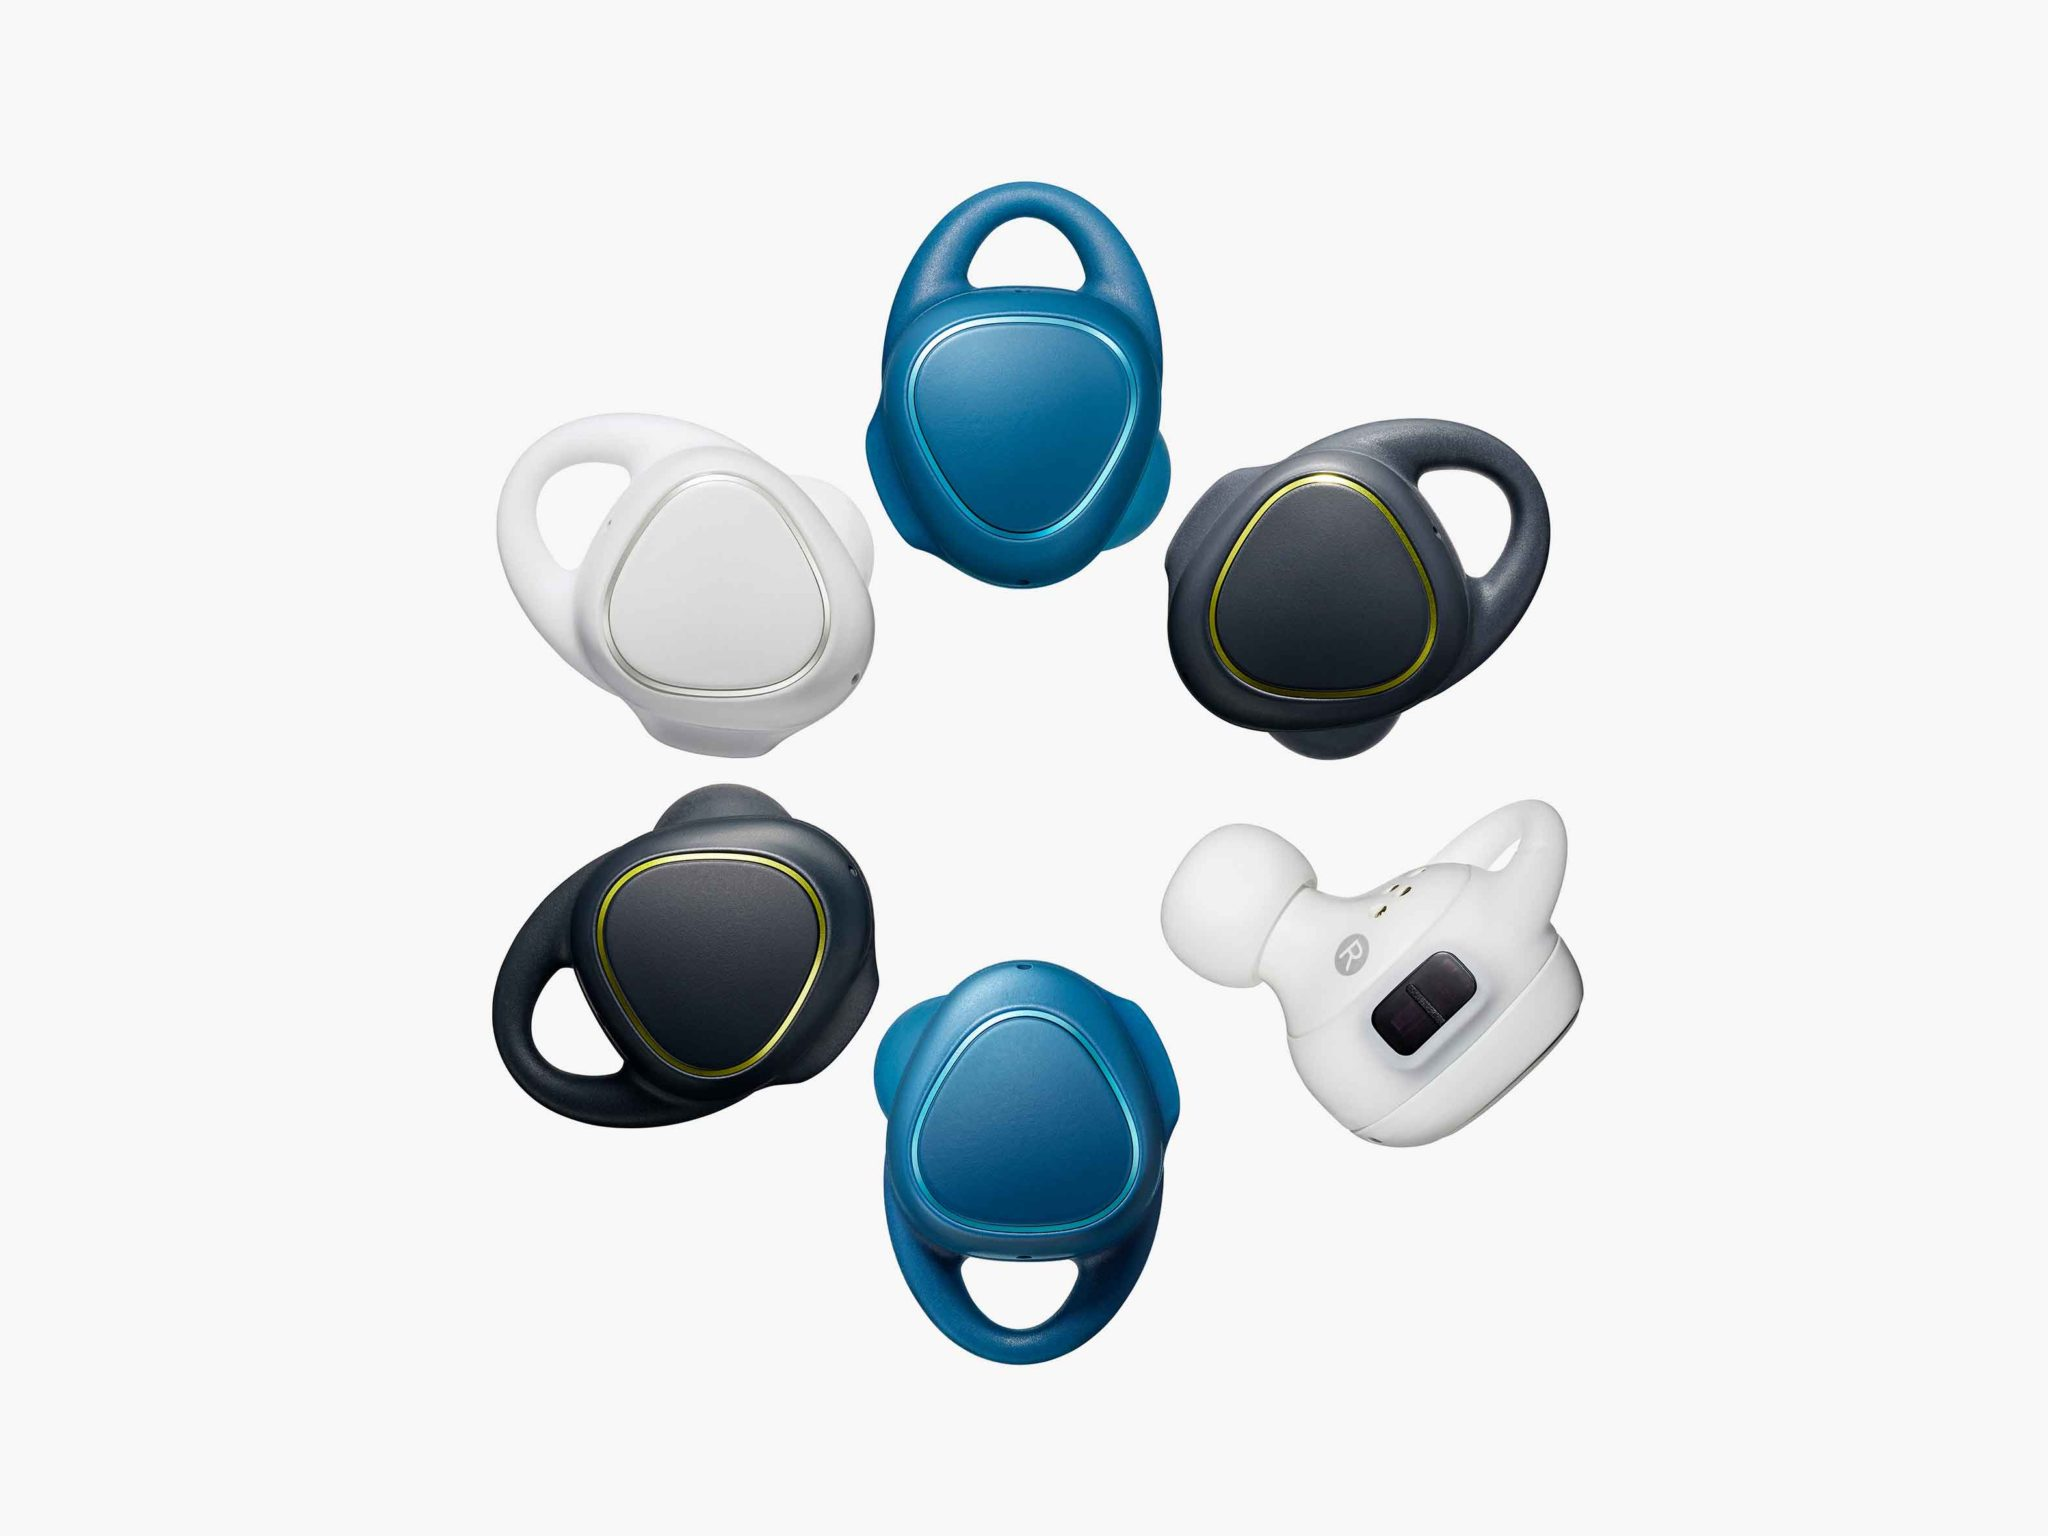 samsung gear iconx bluetooth earbuds with fitness tracker priced at 200. Black Bedroom Furniture Sets. Home Design Ideas